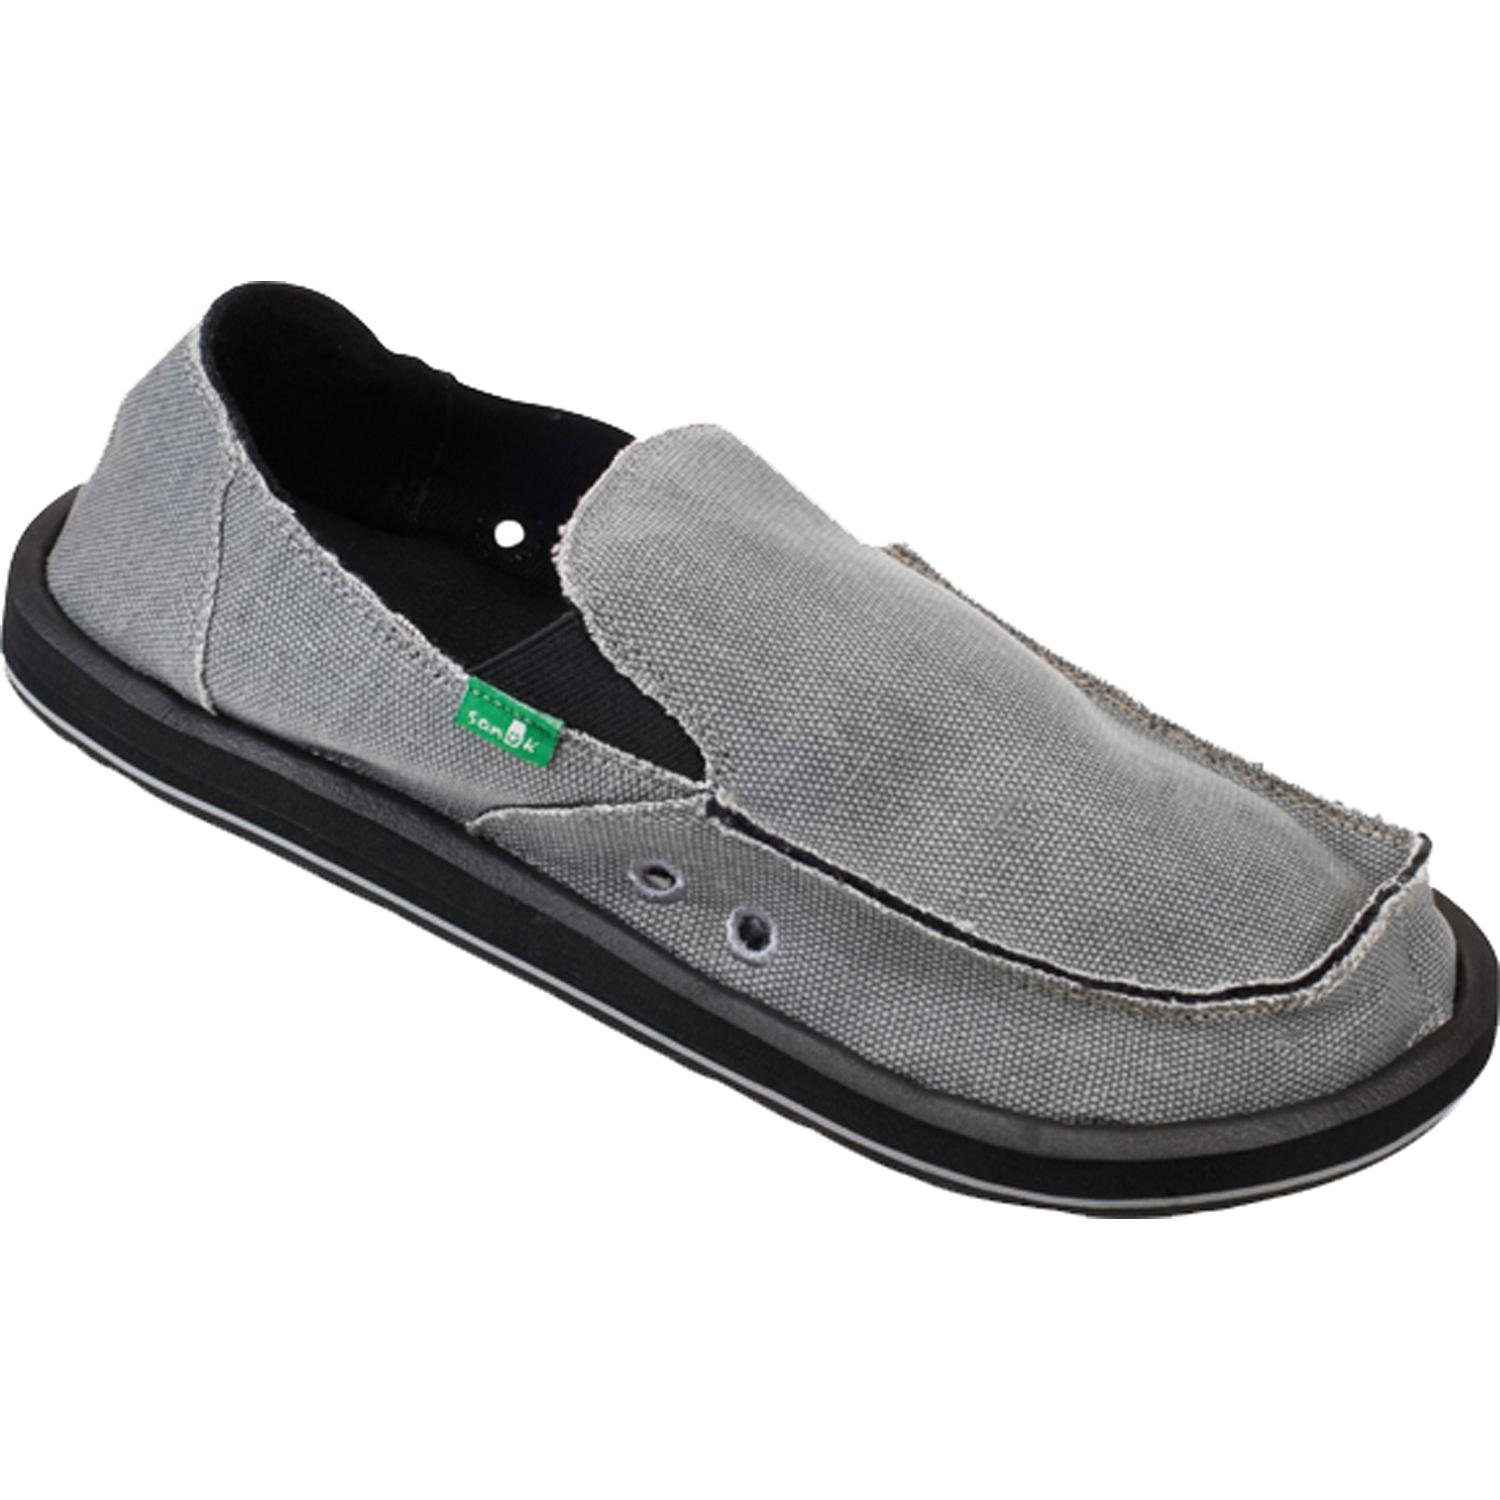 Sanuk Shoes Review On Feet